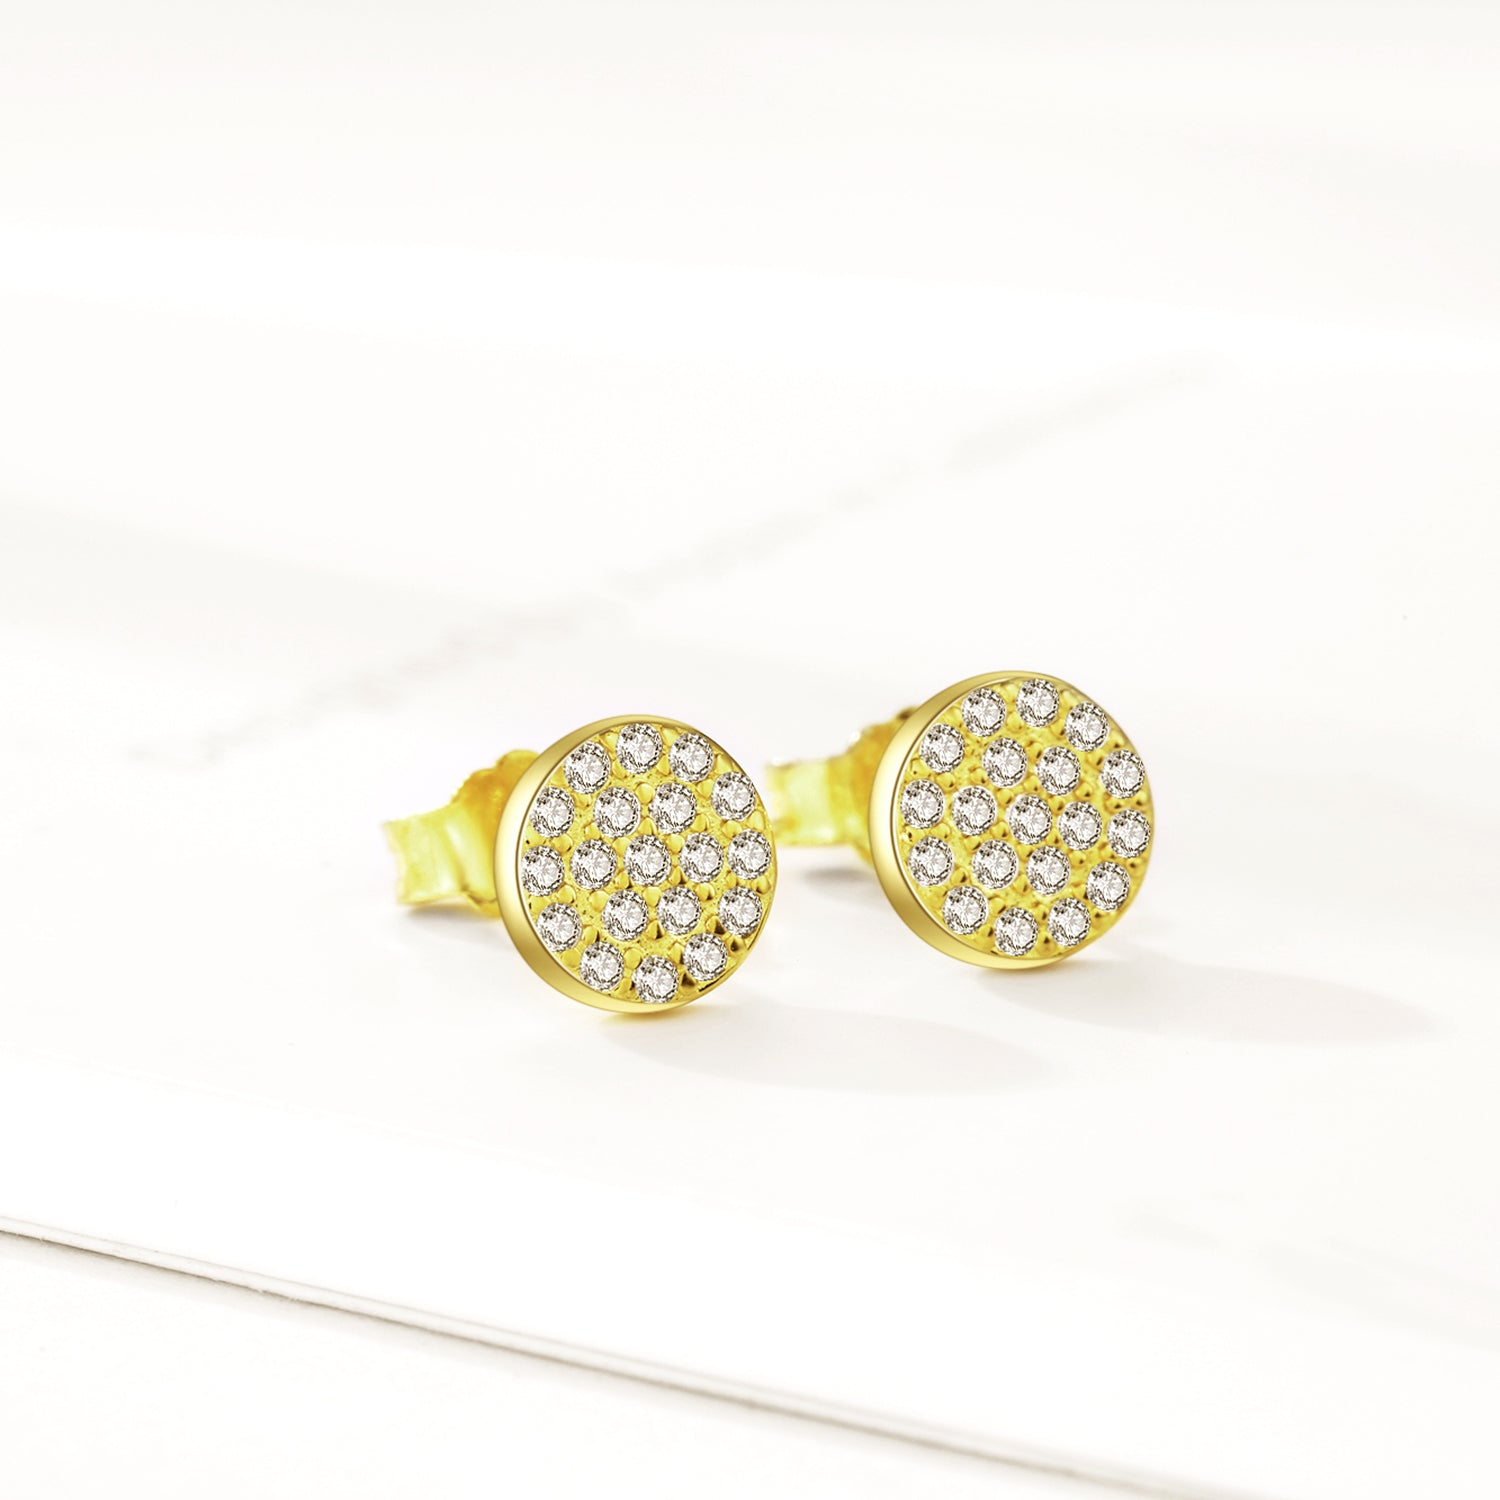 Wholesale Custom Small Moq Light Weight Round Gemstone Earrings For Women